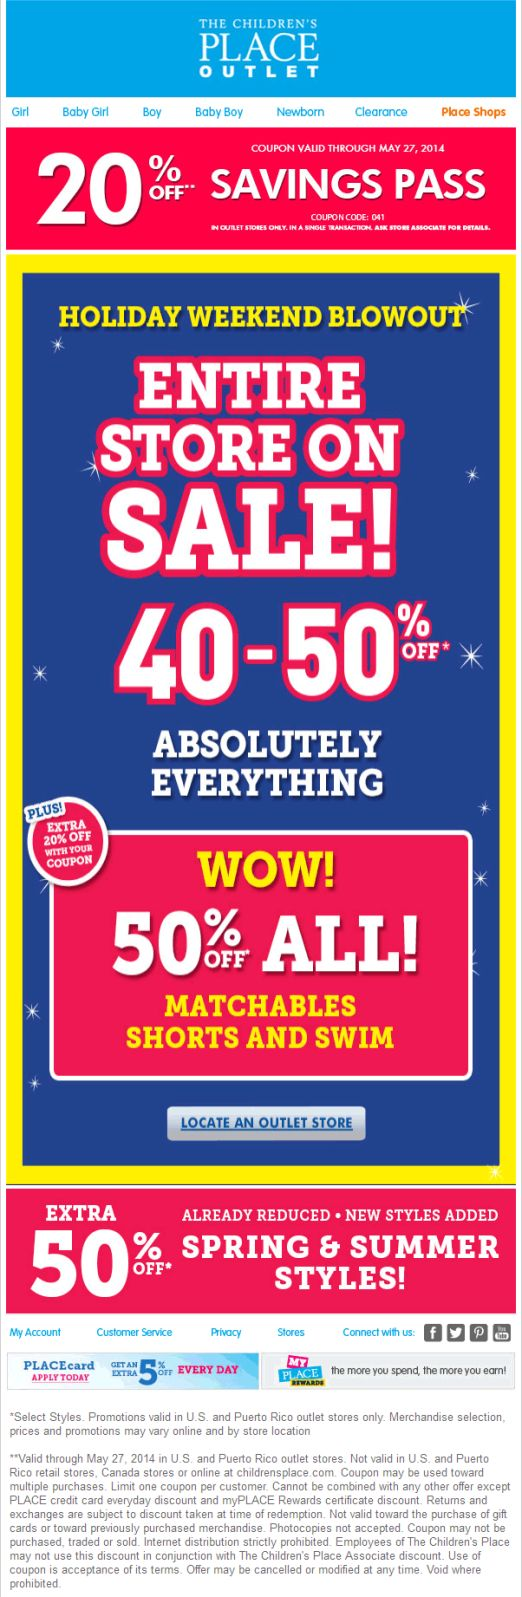 25 best coupon app images on pinterest coupon coupons and december the childrens place coupon the childrens place promo code from the coupons app everything is off and more at the childrens place outlet locations fandeluxe Image collections